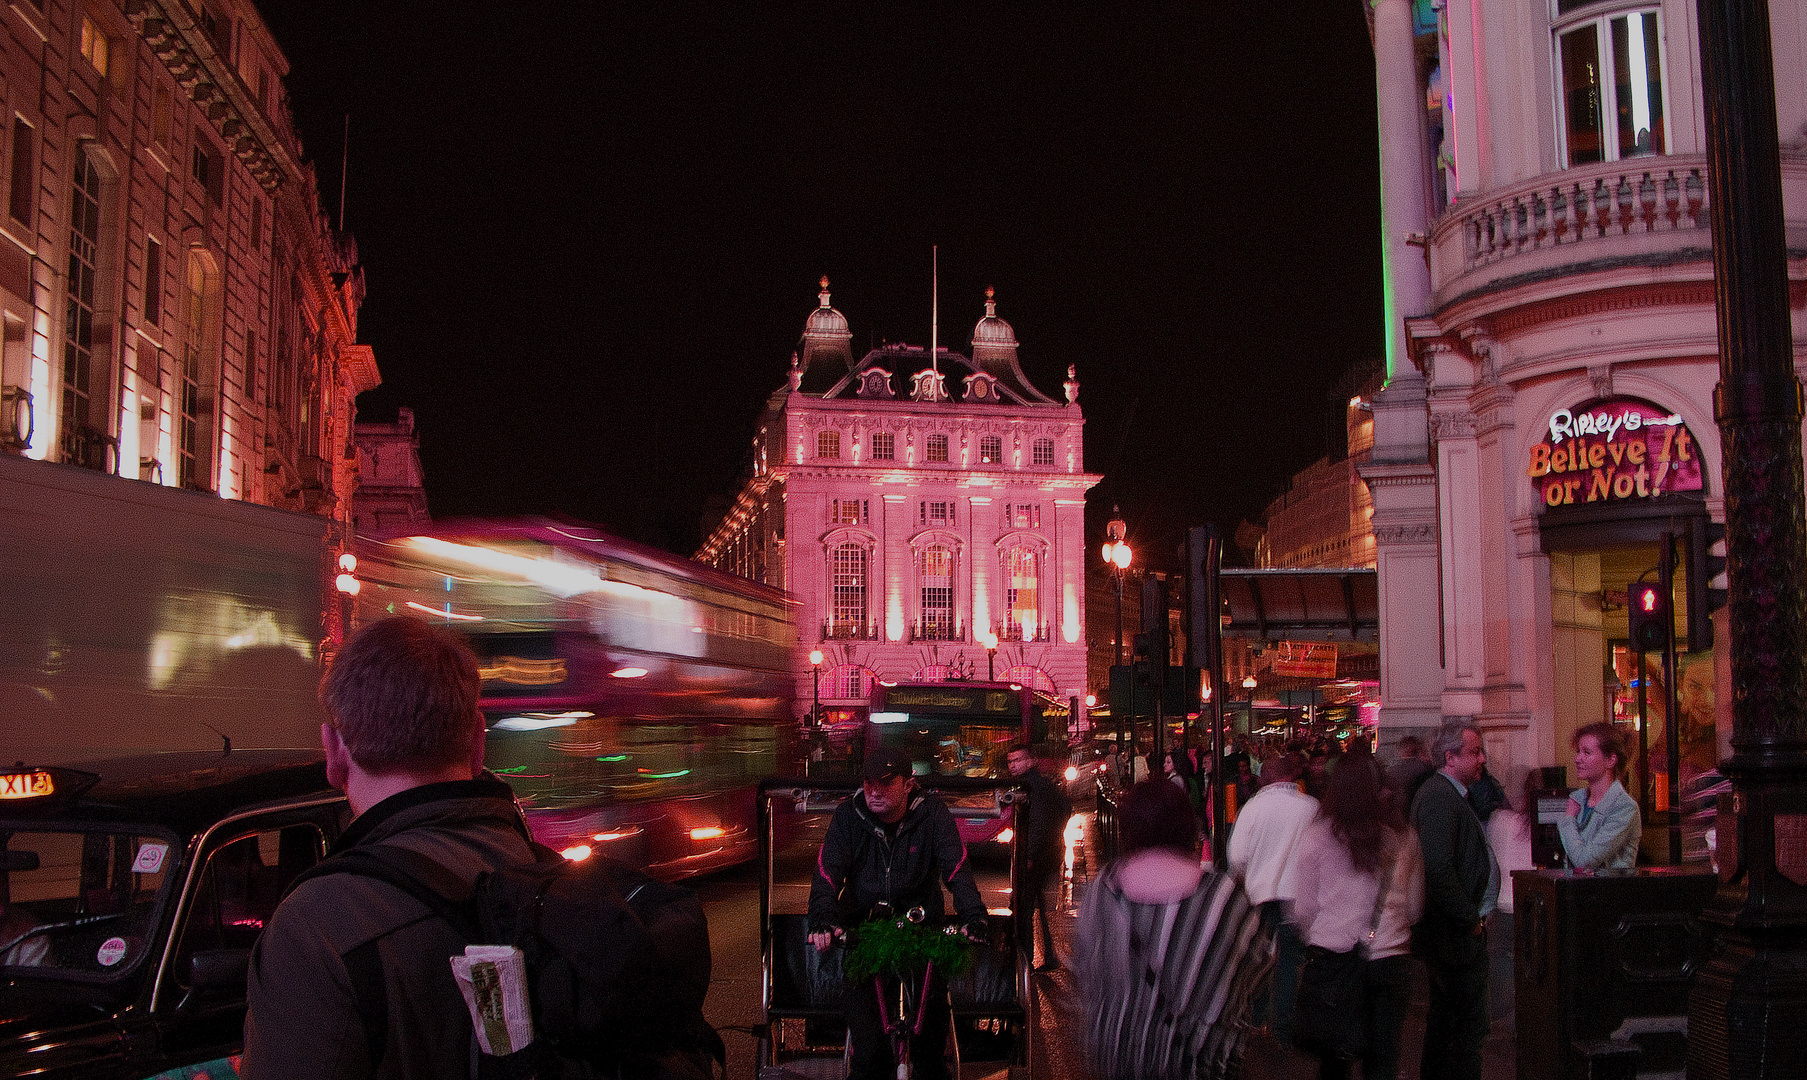 A night at Piccadilly Circus